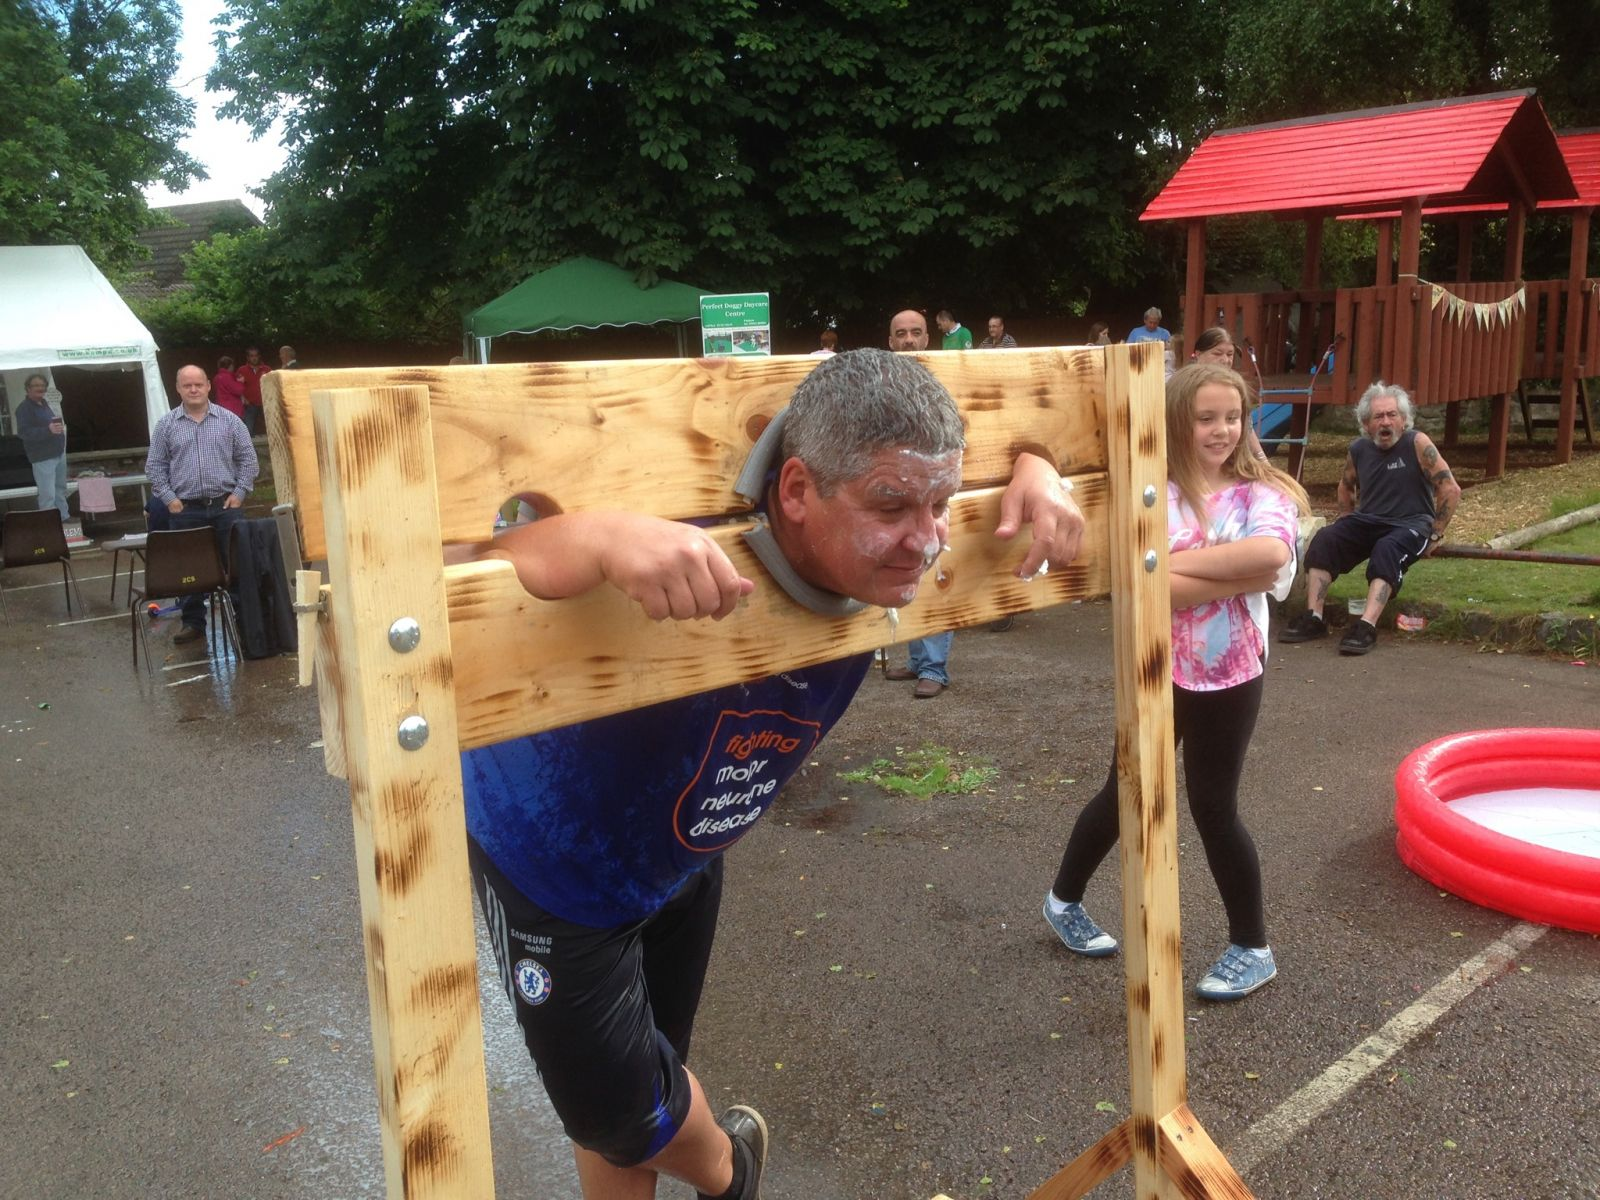 The stocks at The Castle Inn Family fun day